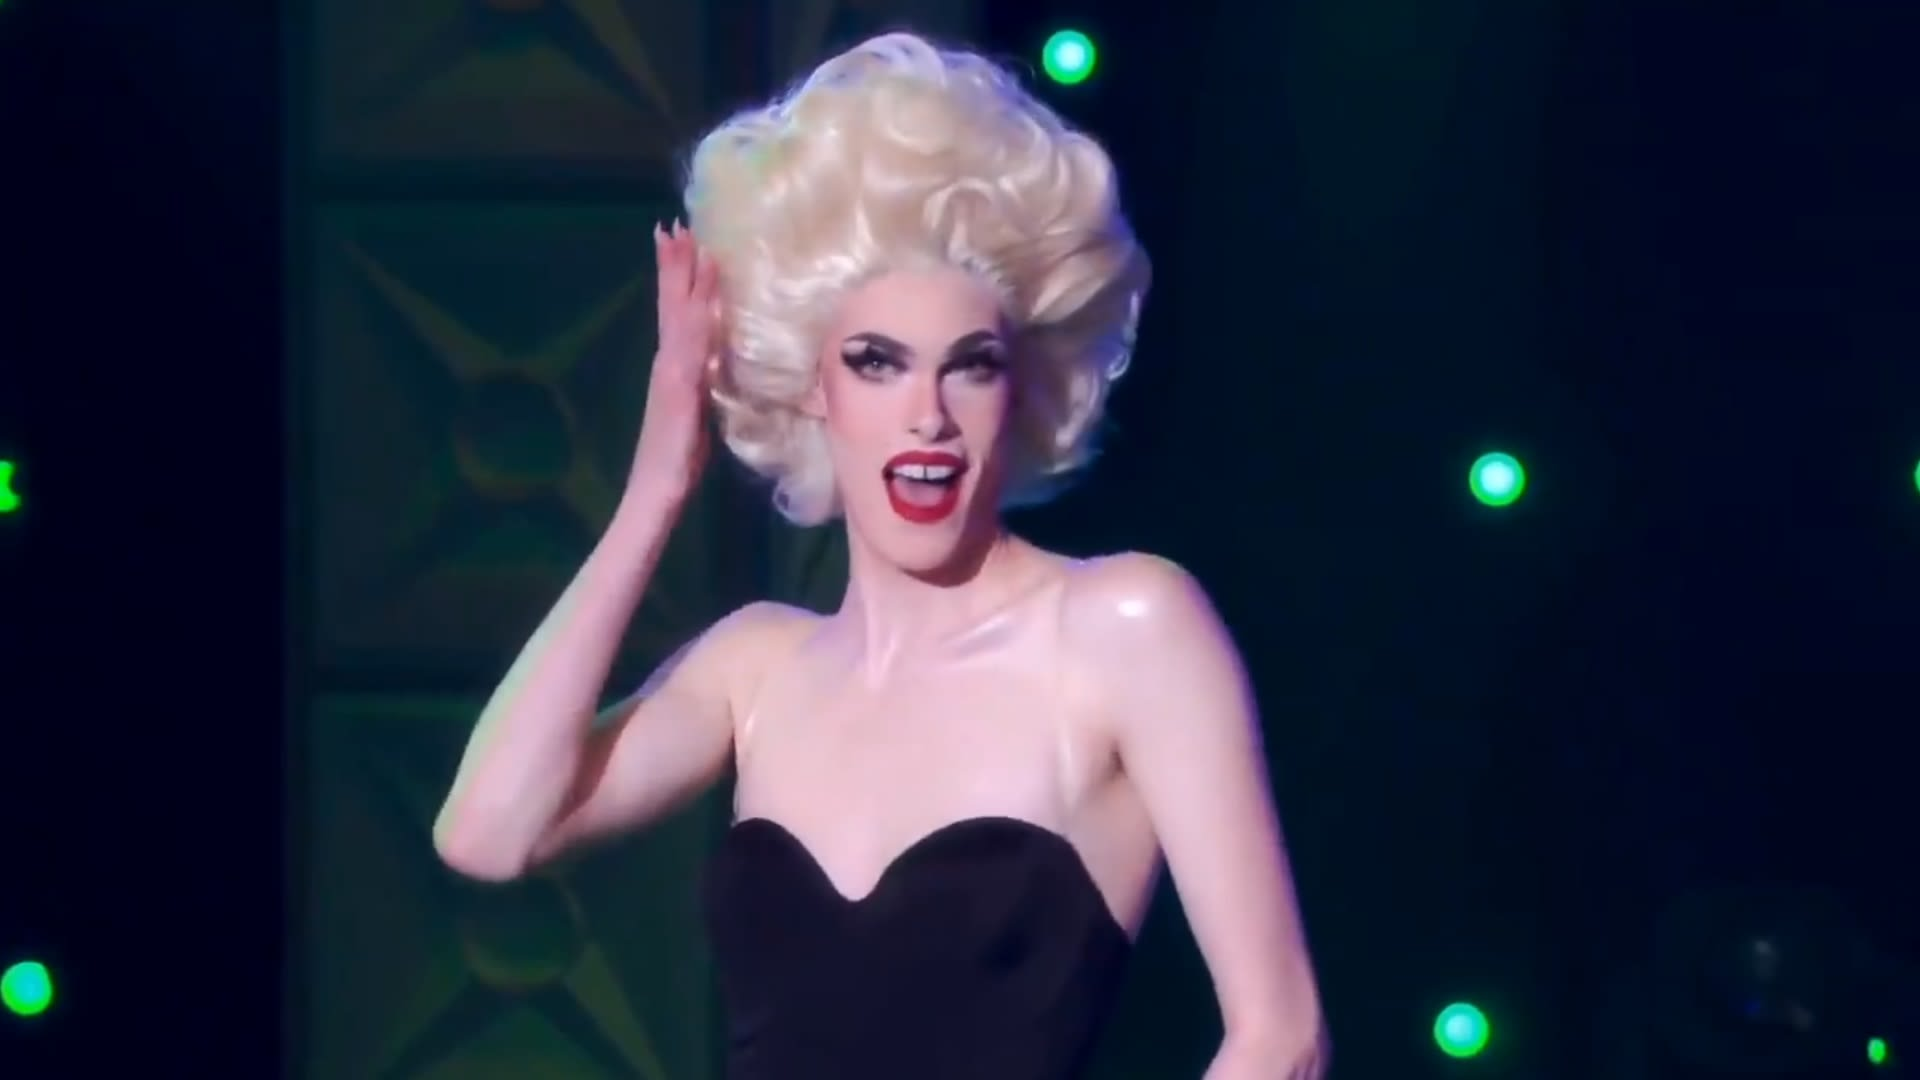 Rupaul S Drag Race Season 12 Episode 7 Review Madonna The Unauthorized Rusical Tv Fanatic